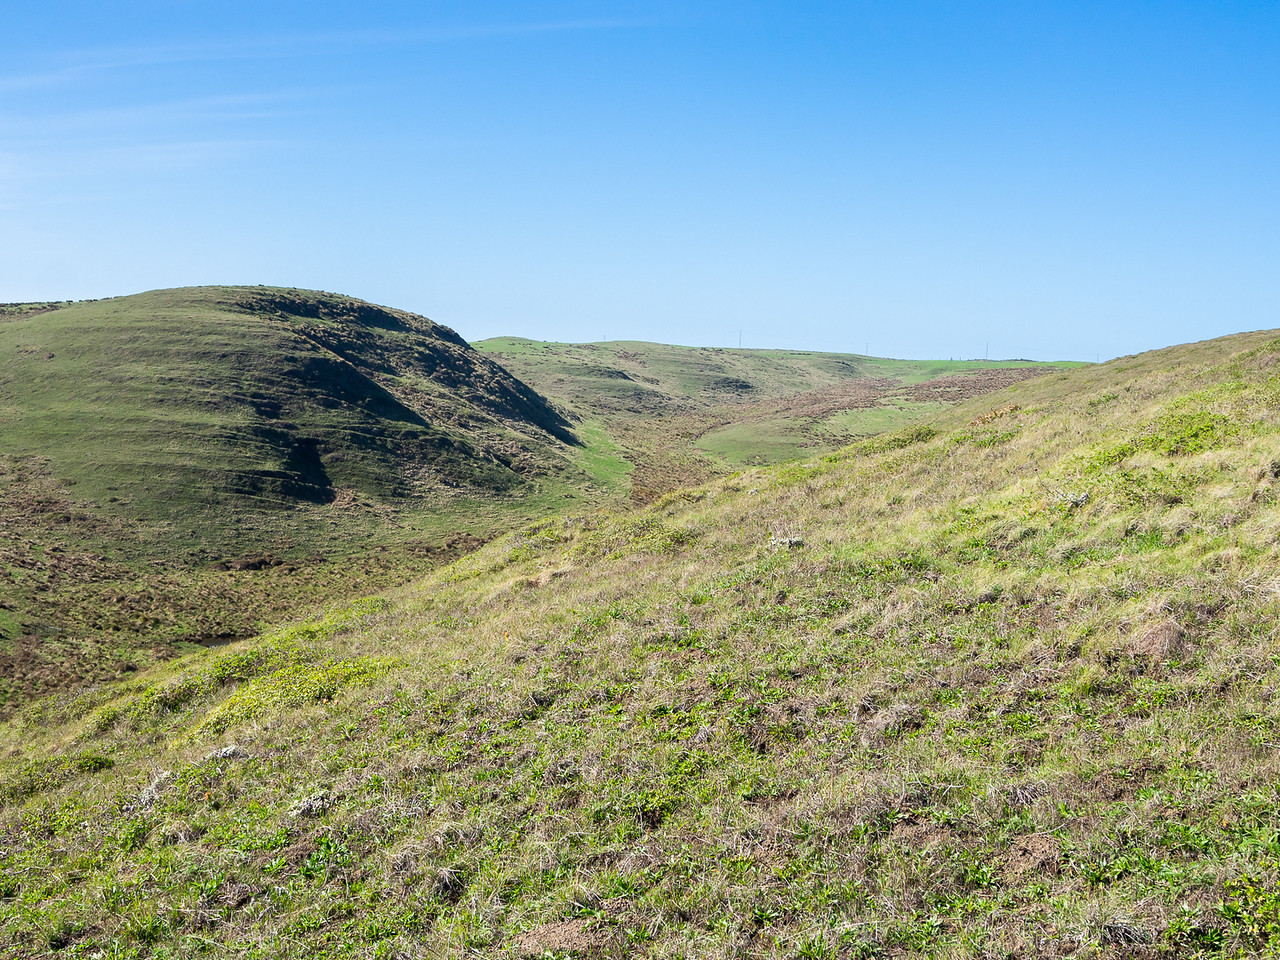 I went back up for the remainder of my hike.  On and behind the bluffs it's grazing land: the Pt. Reyes Pastoral Zone.  Ranches here go back to the 1850's.